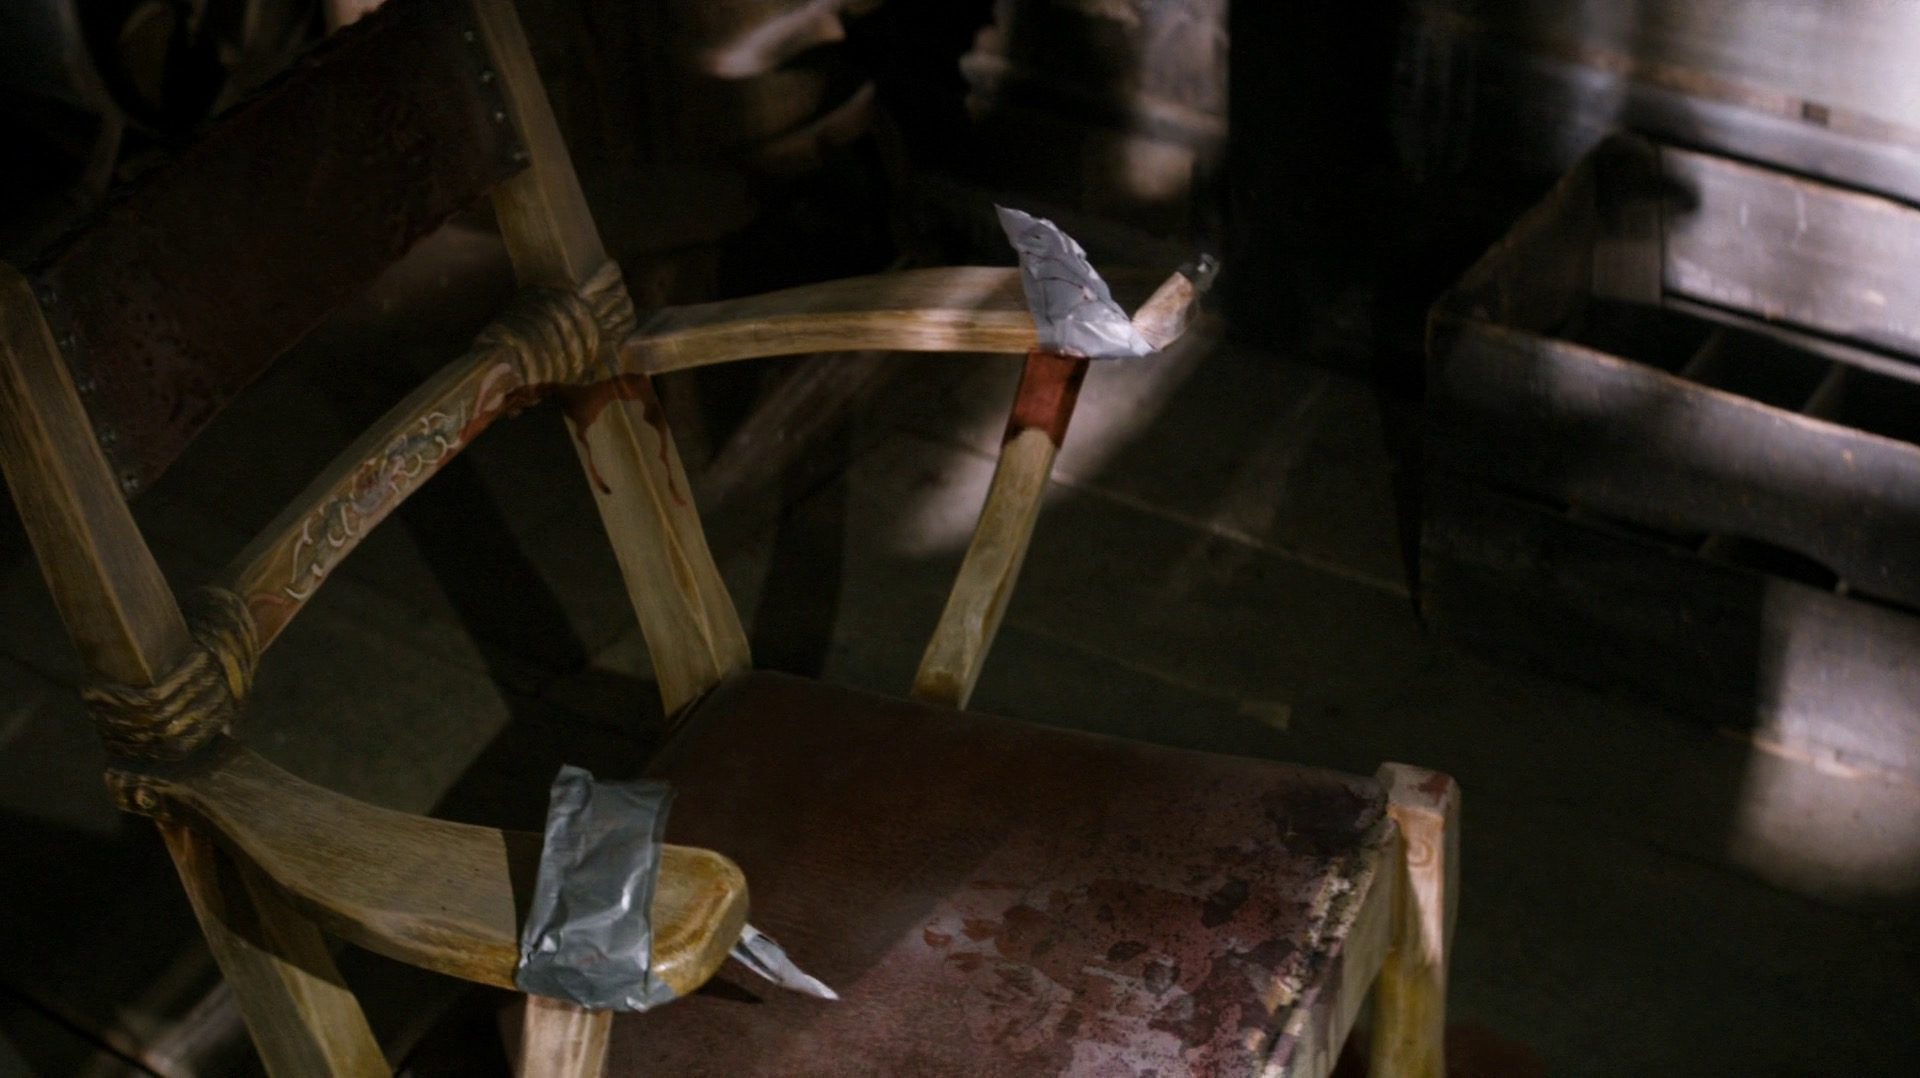 A bloody chair